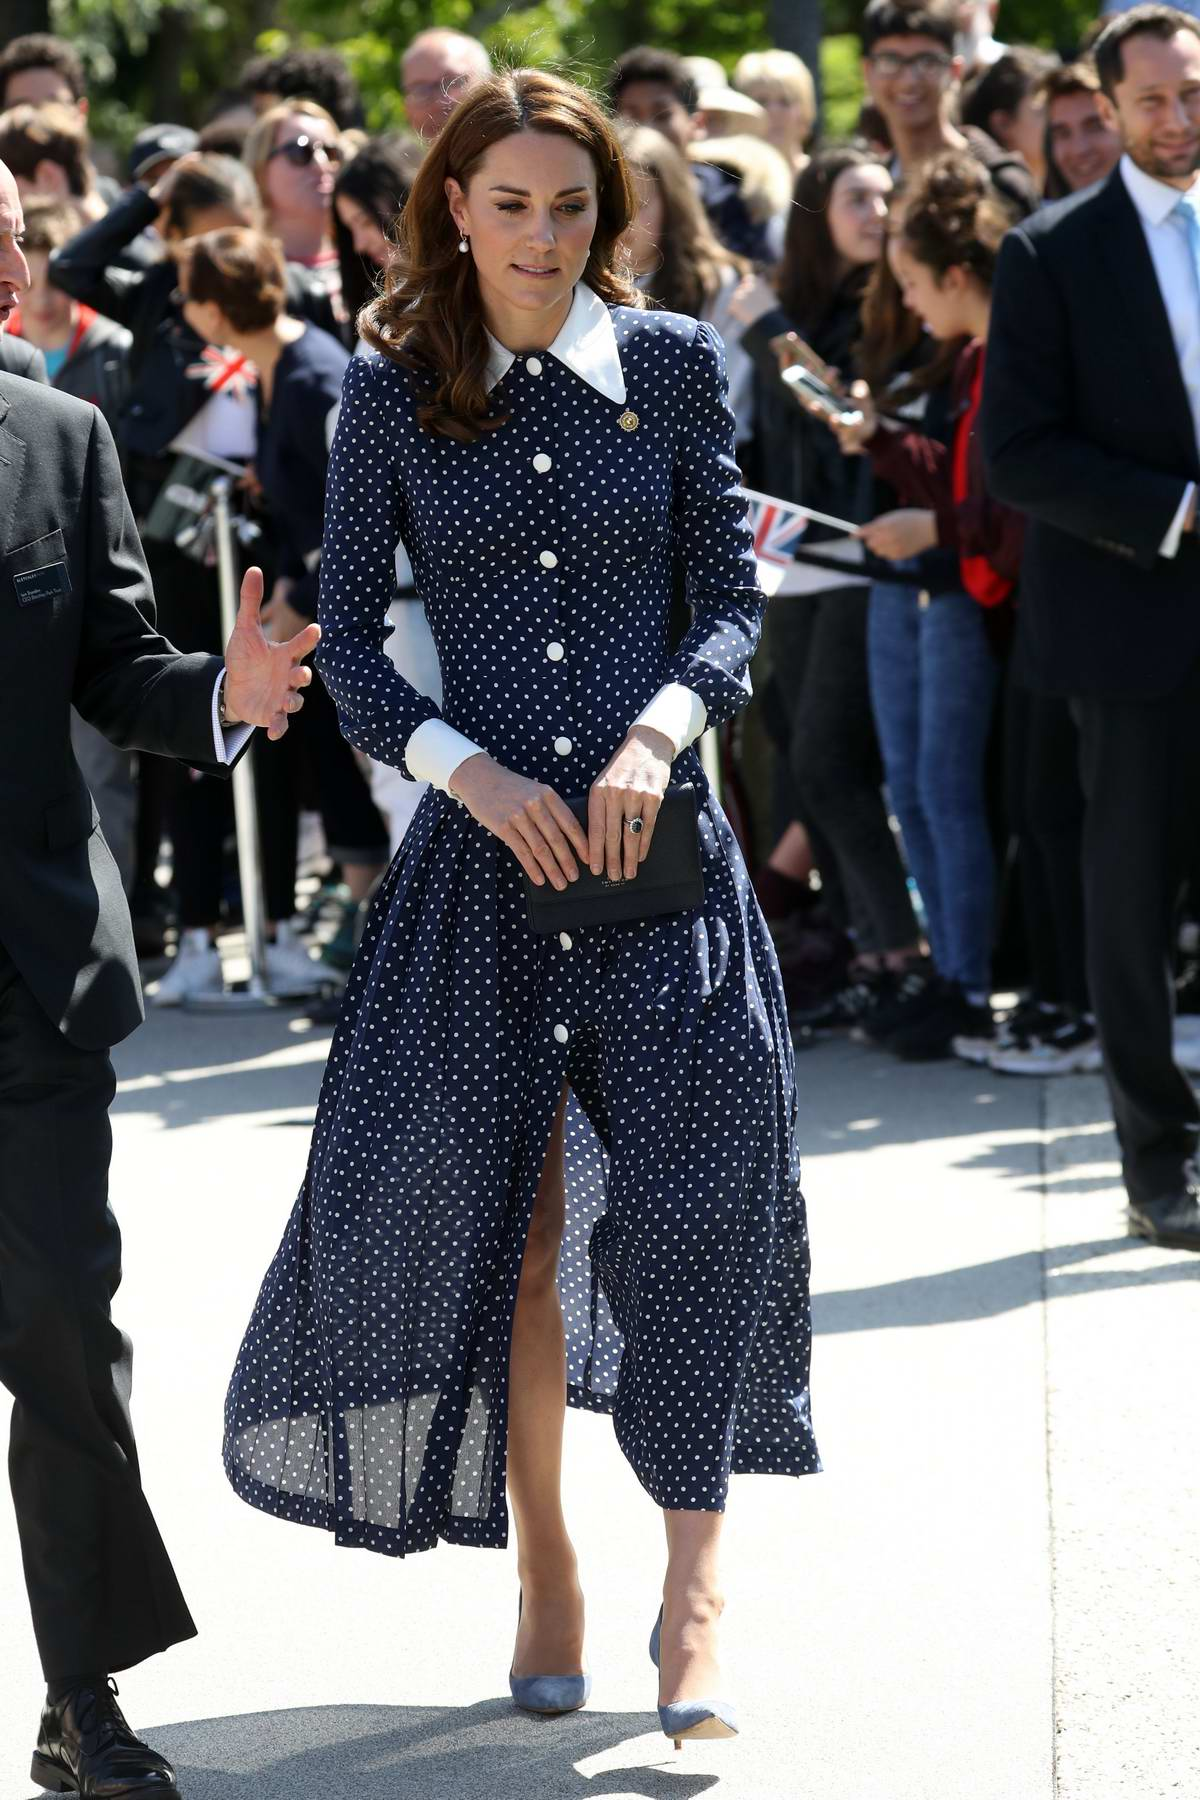 Kate Middleton visits an exhibition marking the 75th anniversary of D-Day at Bletchley Park in Milton Keynes, Buckinghamshire, UK